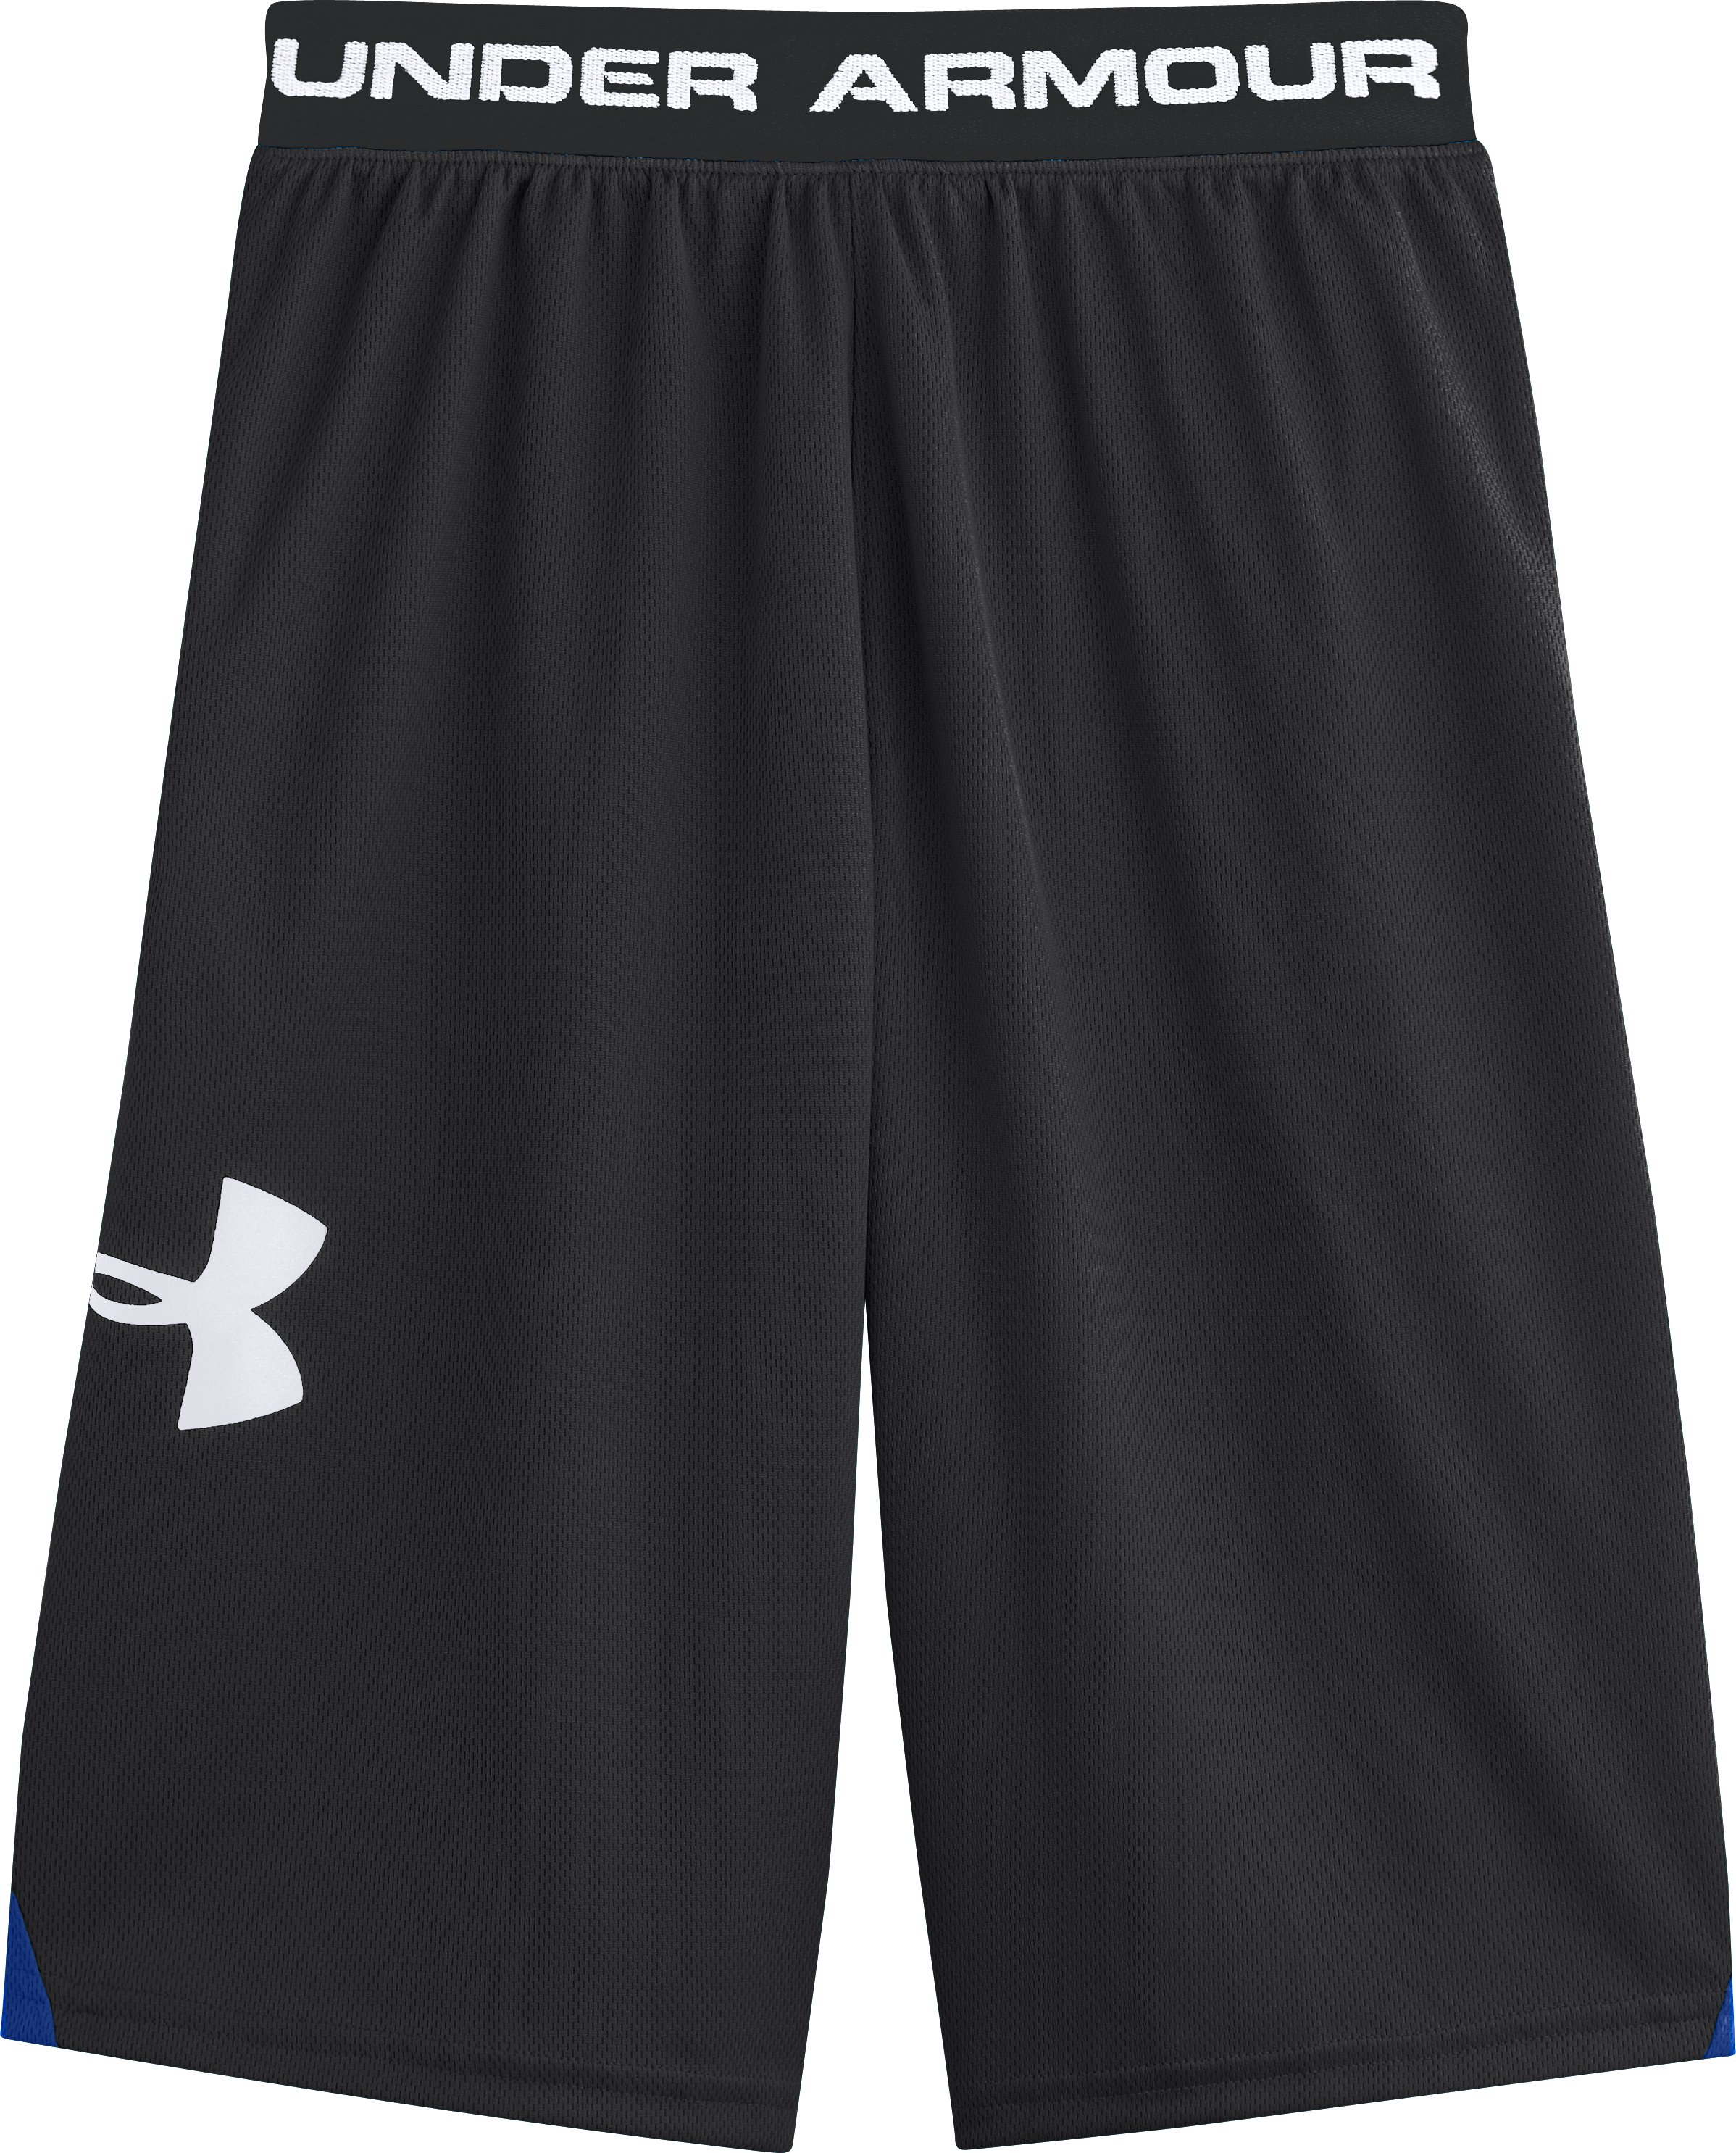 Boys' UA From Downtown Shorts, Royal